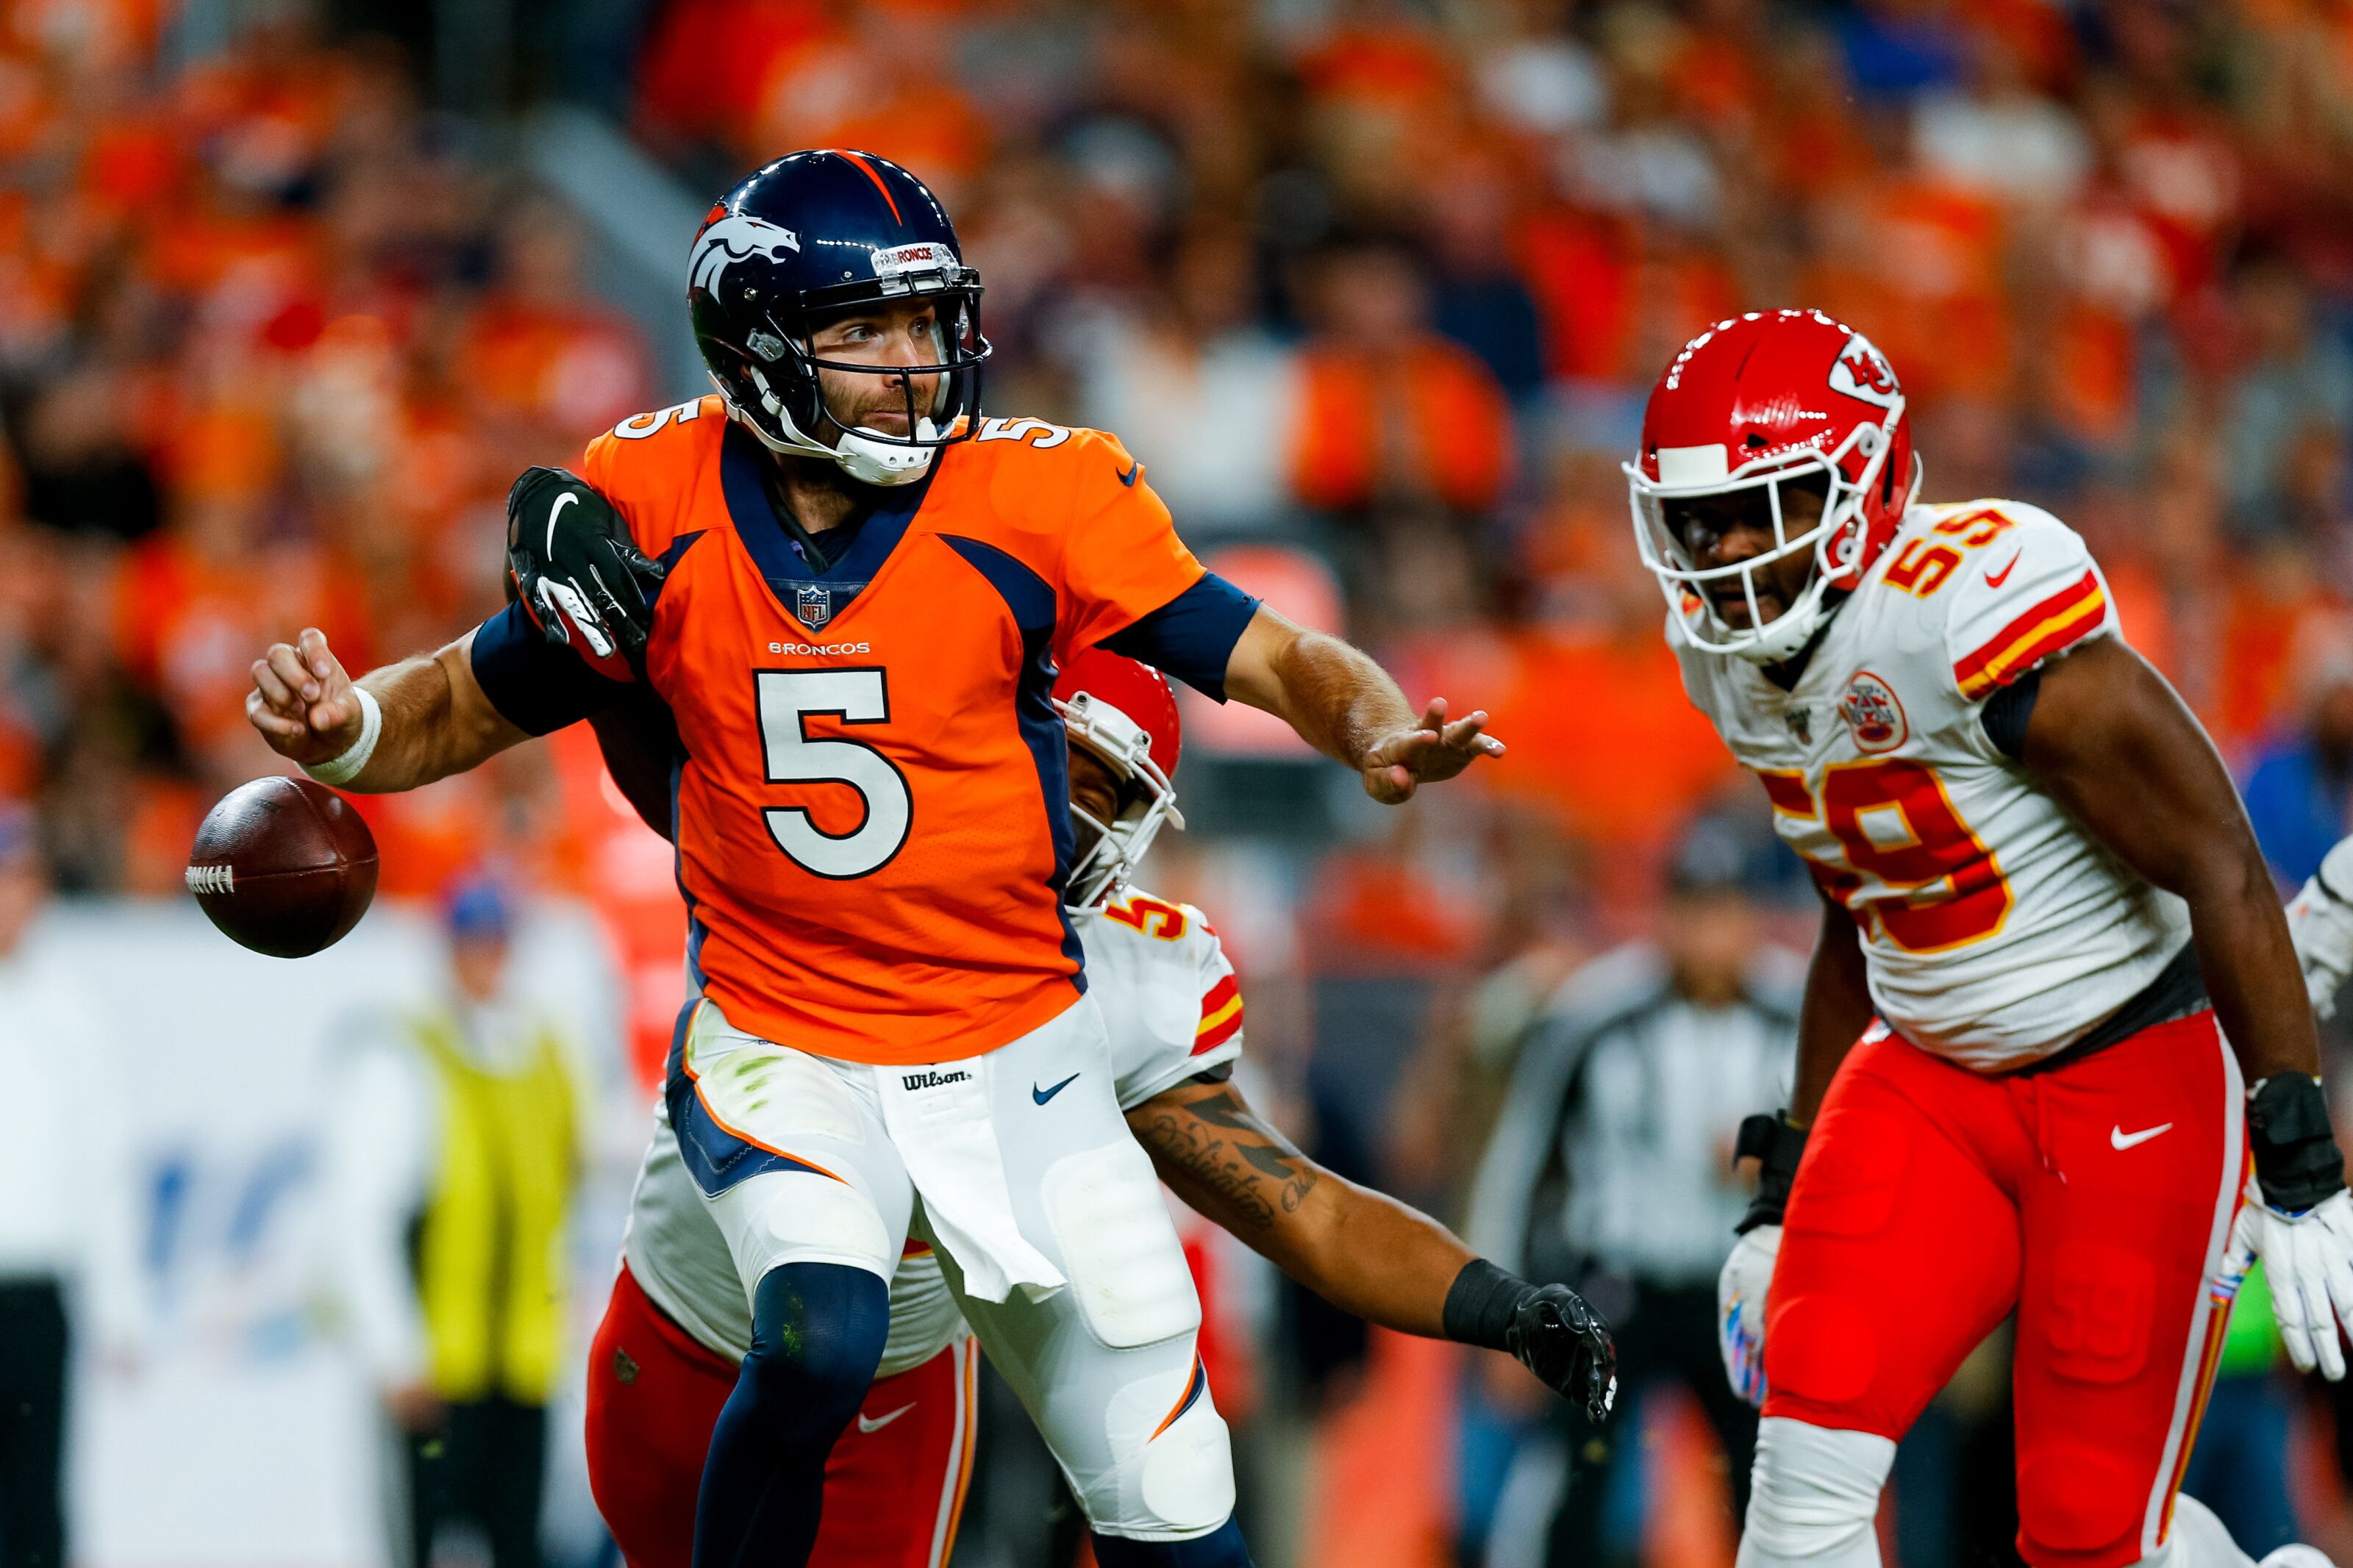 Denver Broncos need to accept reality and trade some stars